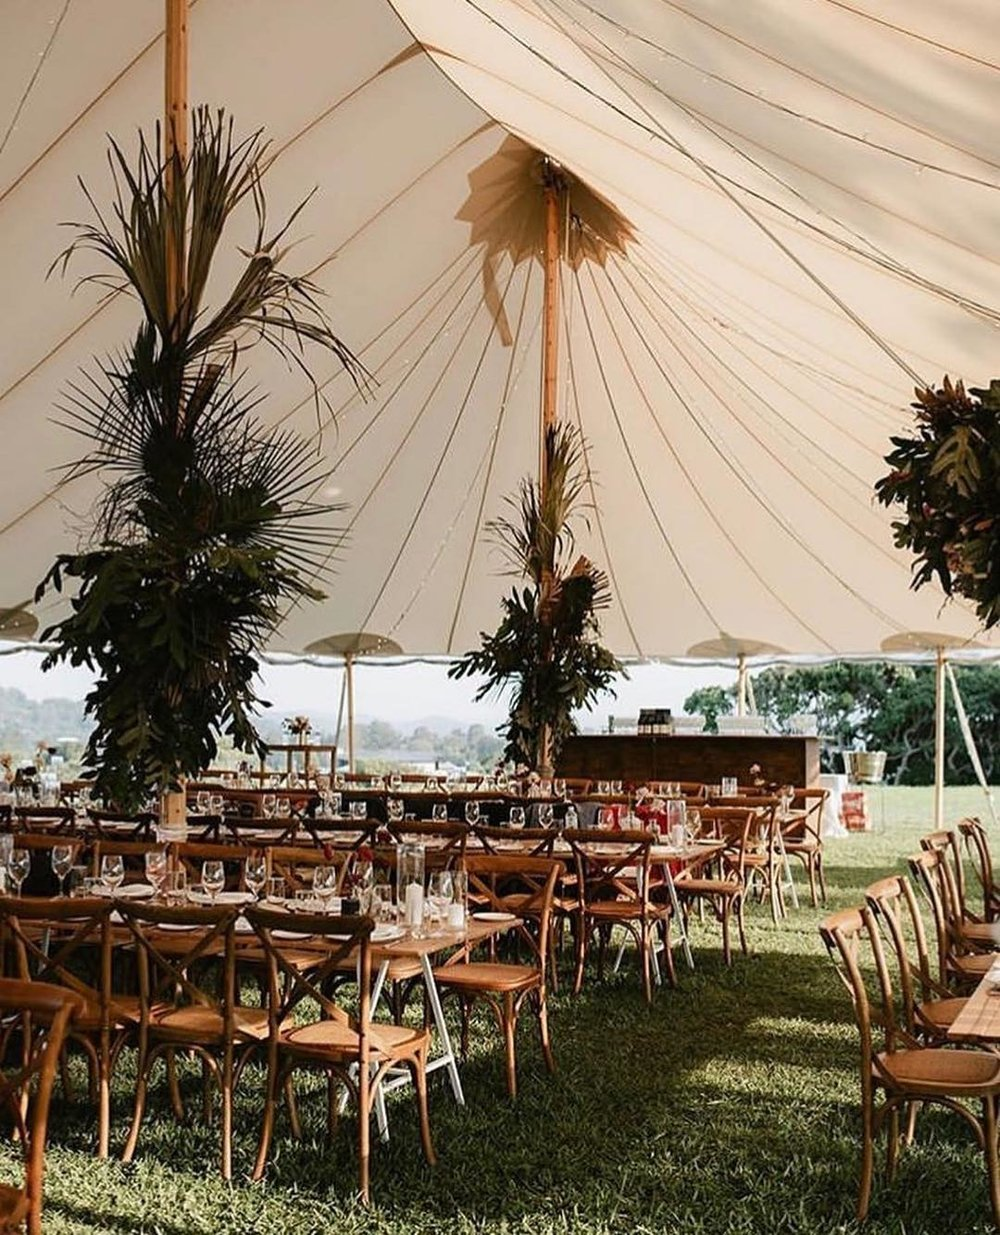 3 Well Travelled Bride Sperry Tents Wedding Hire Services Byron Bay.jpg